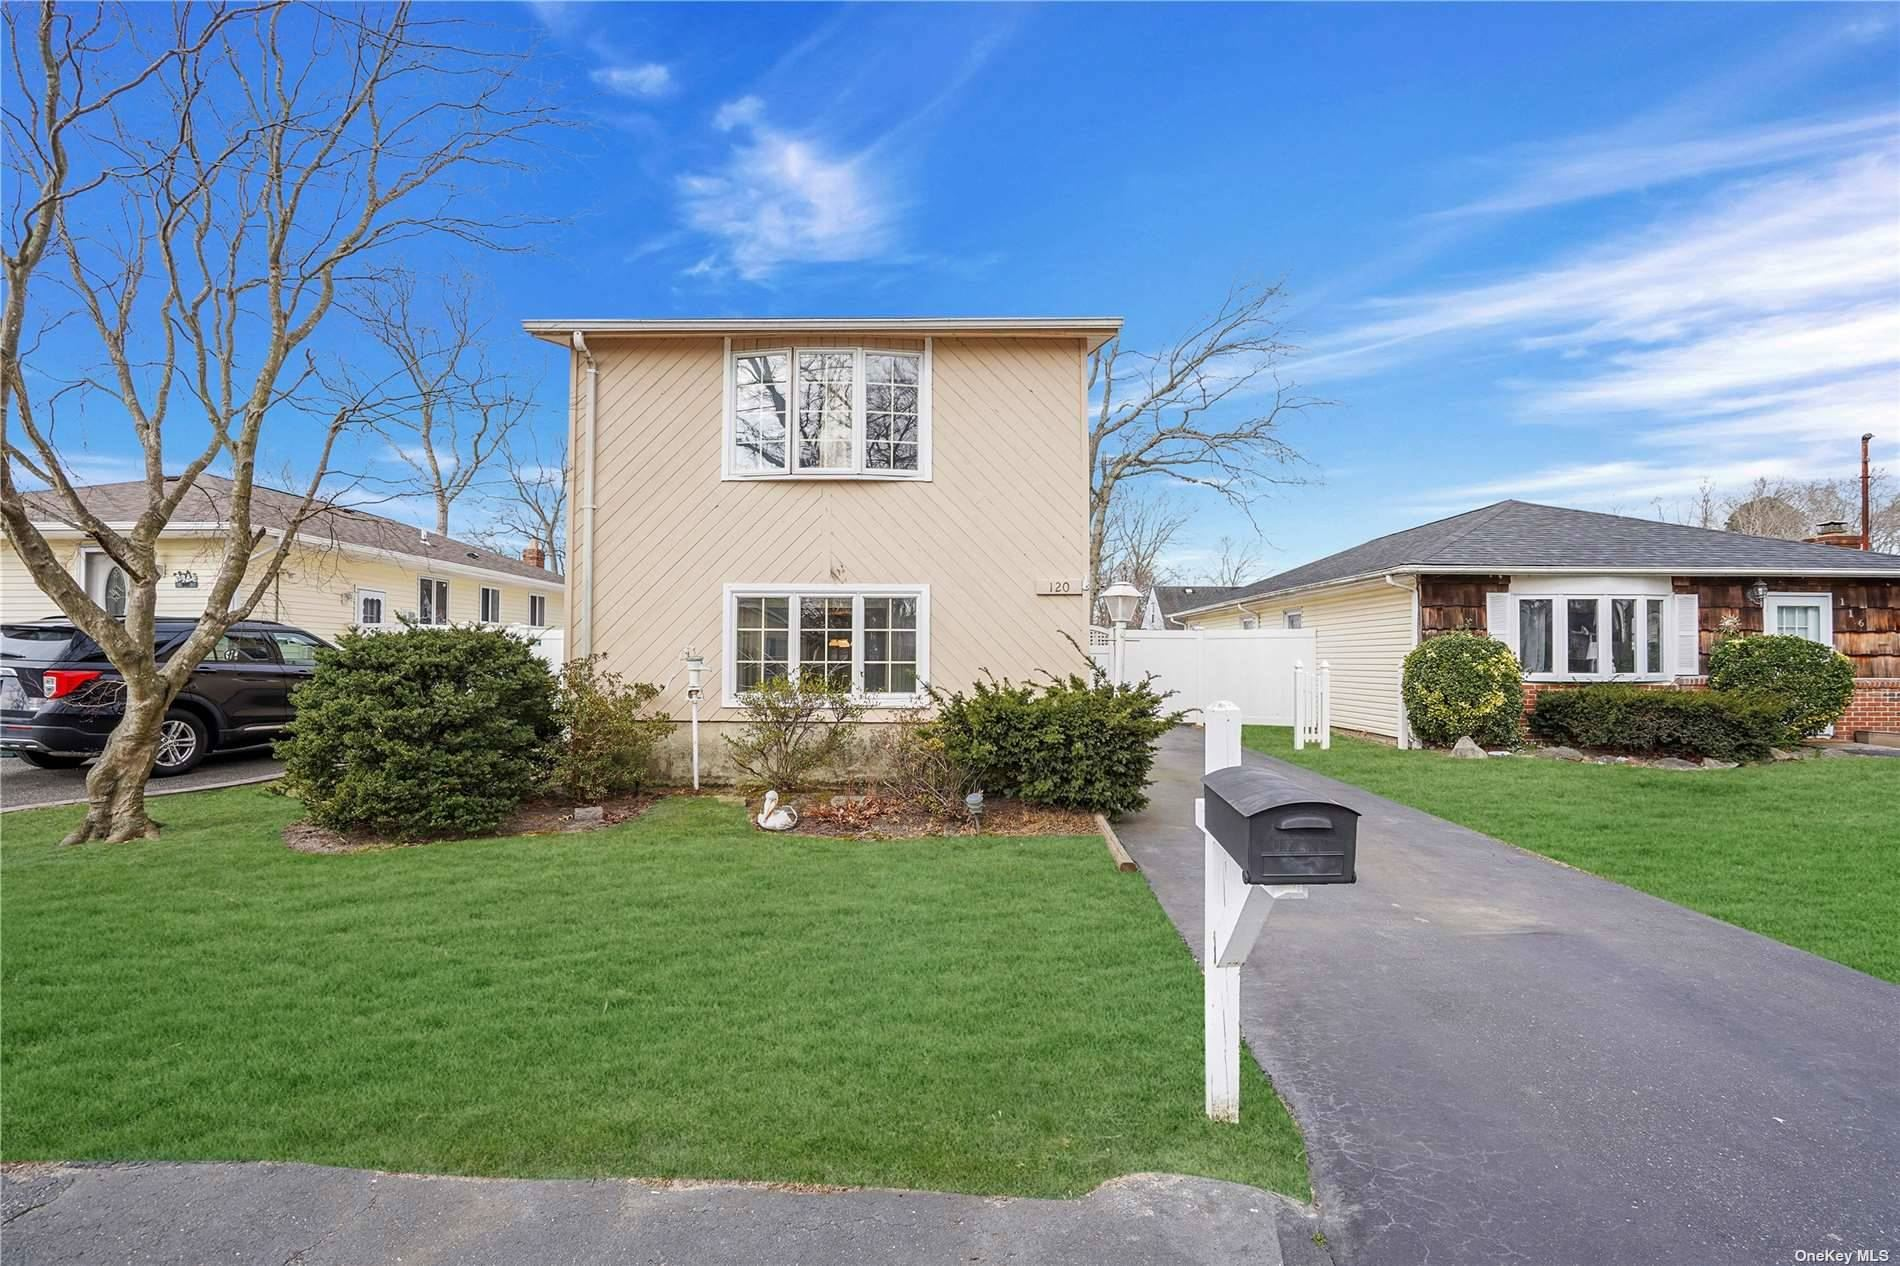 120 Mulford Street, Patchogue, NY 11772 - MLS#: 3296360